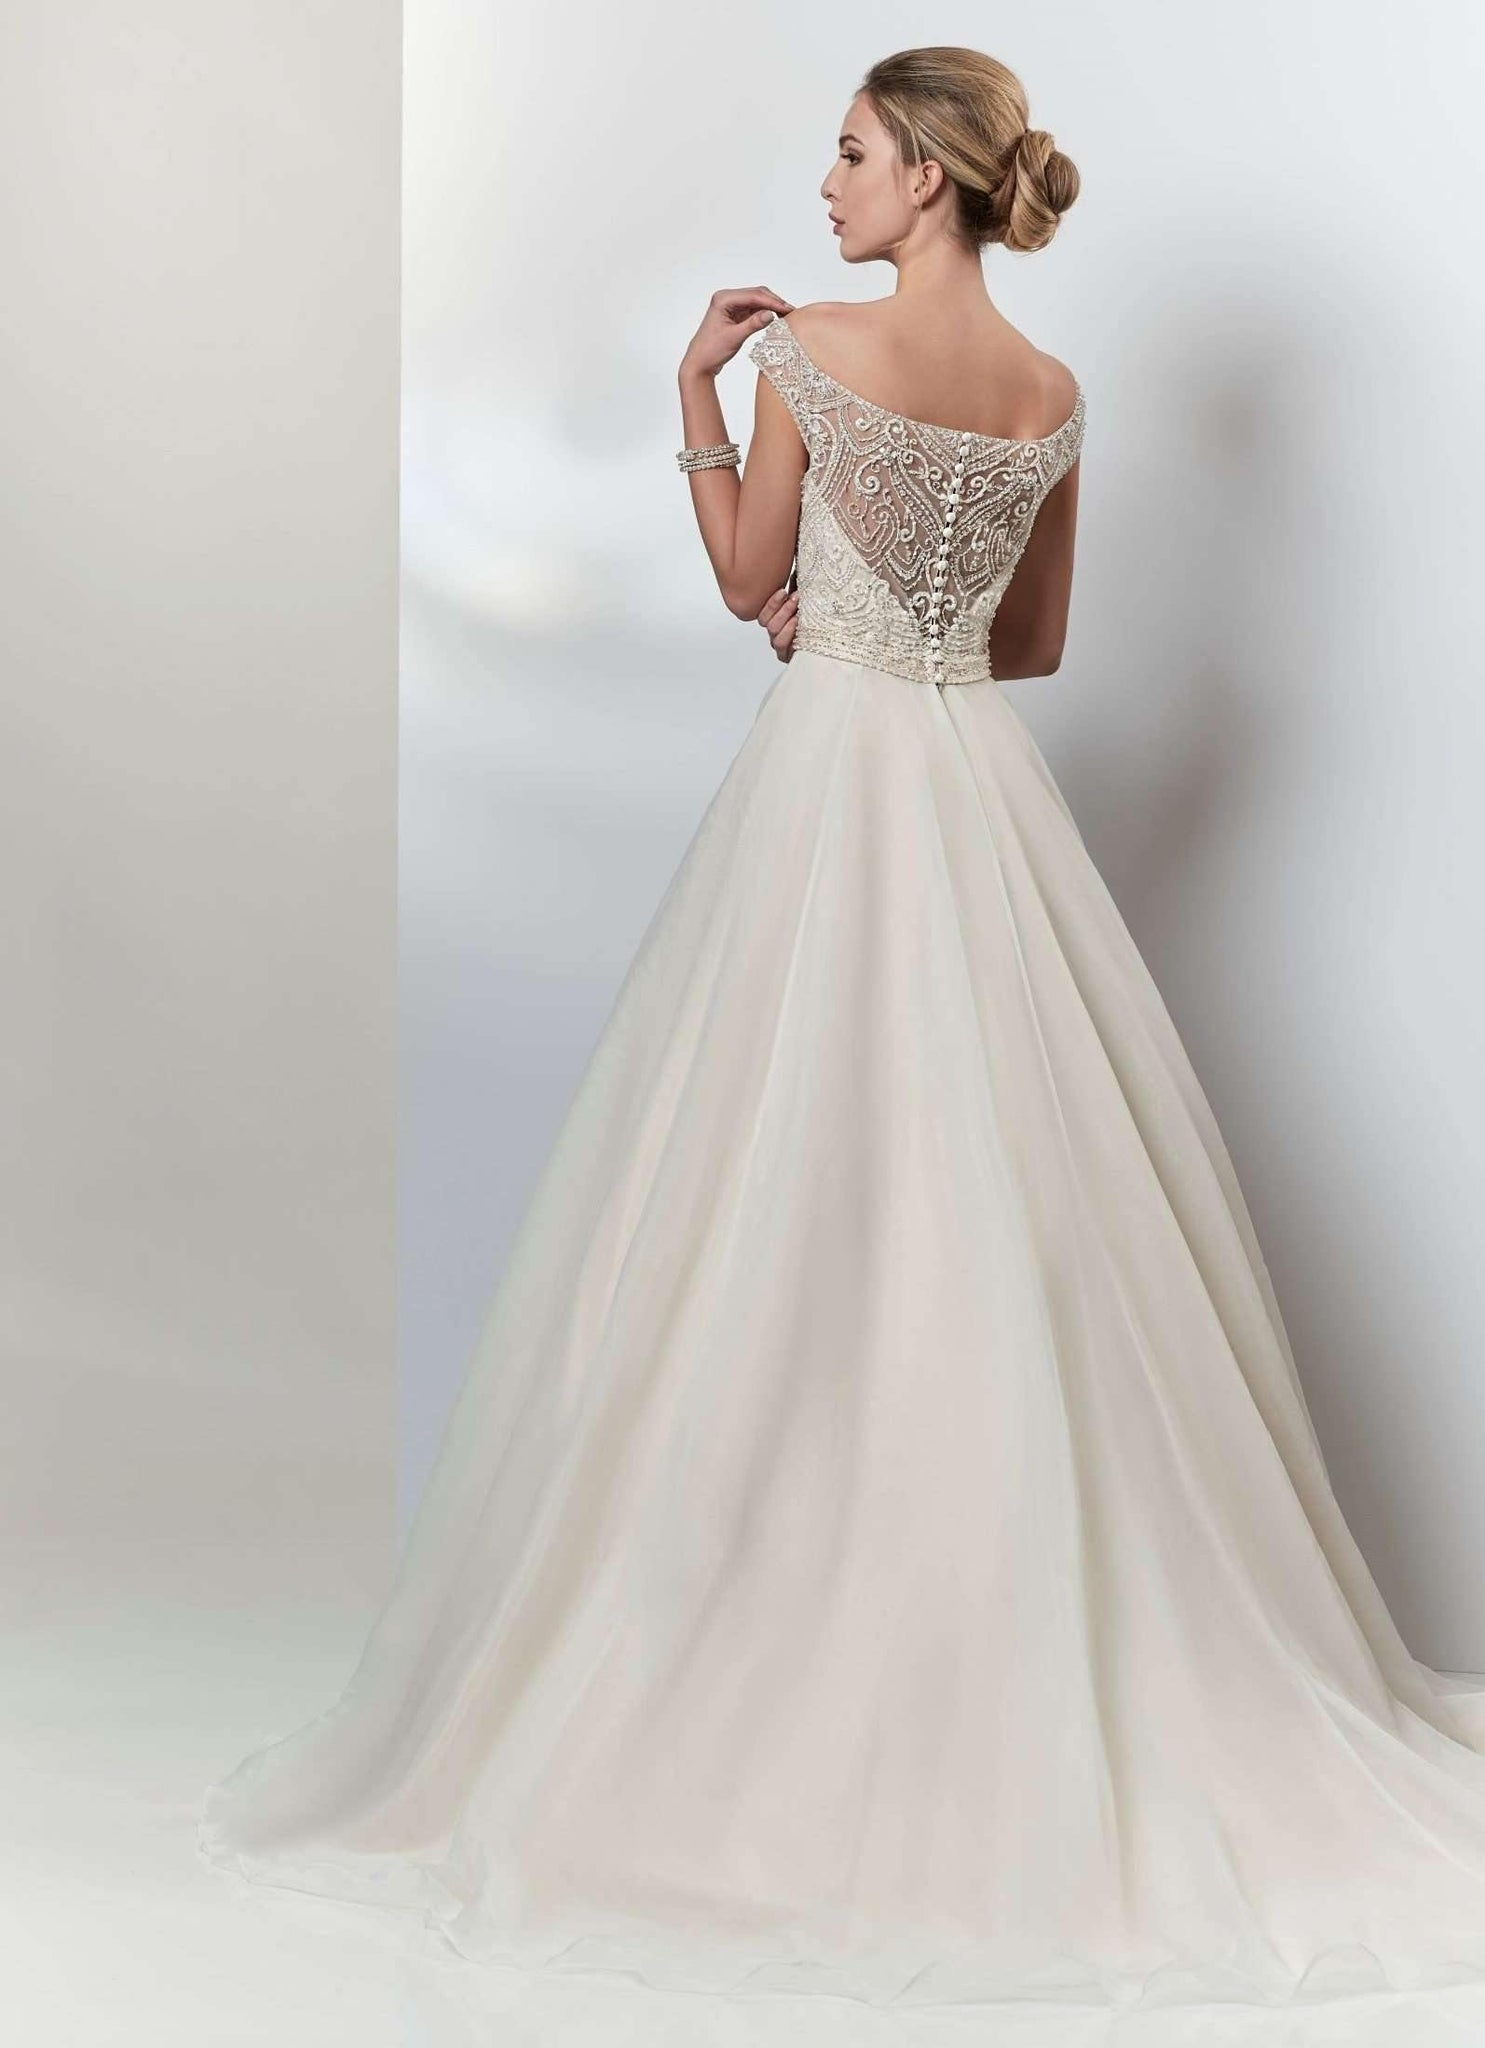 VENUS BRIDAL - Aurora - Adore Bridal and Occasion Wear